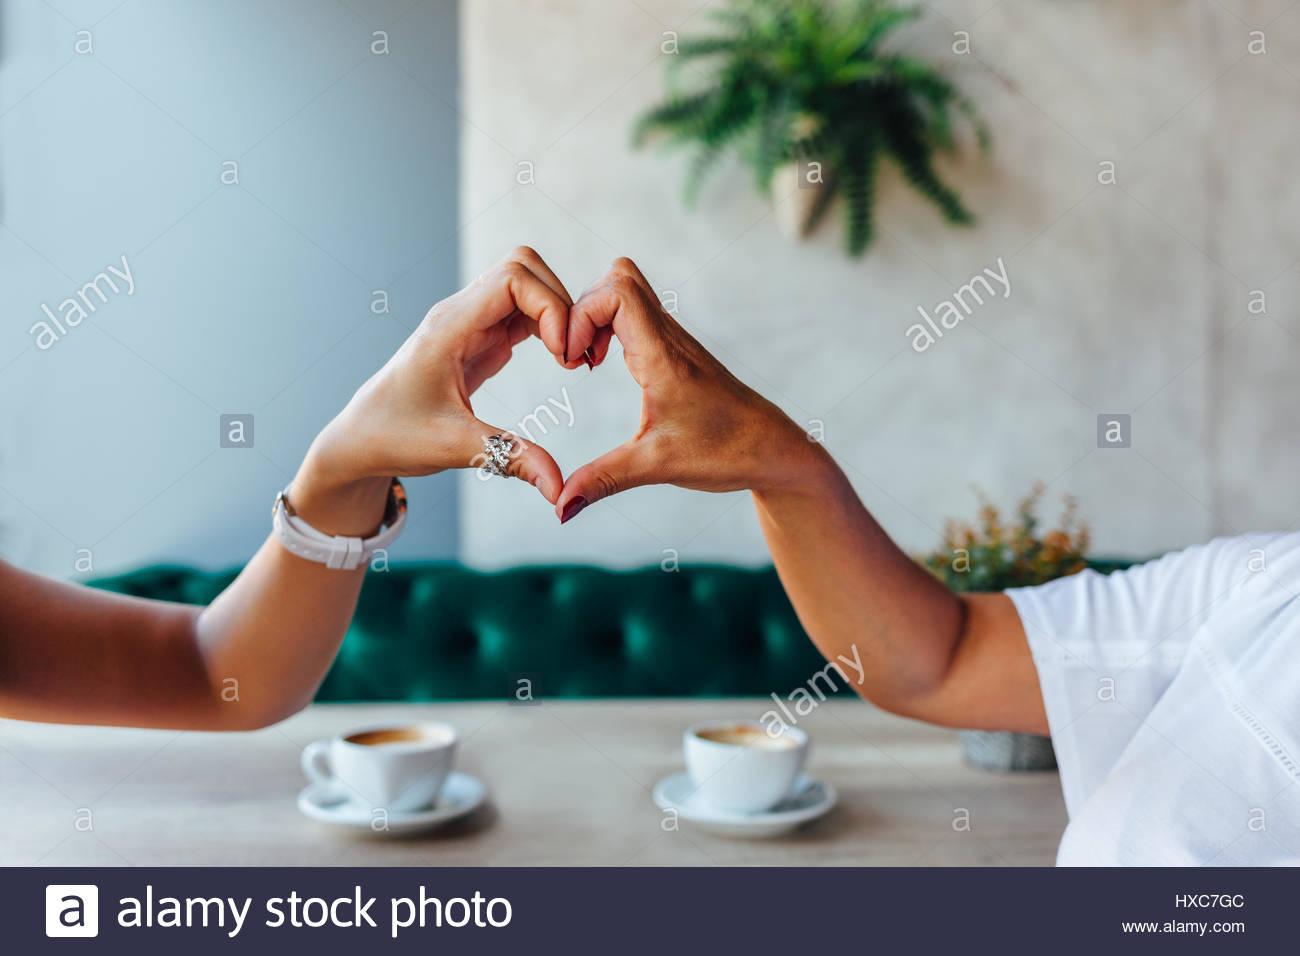 Closeup of mom and daughter making a heart with hands - Stock Image